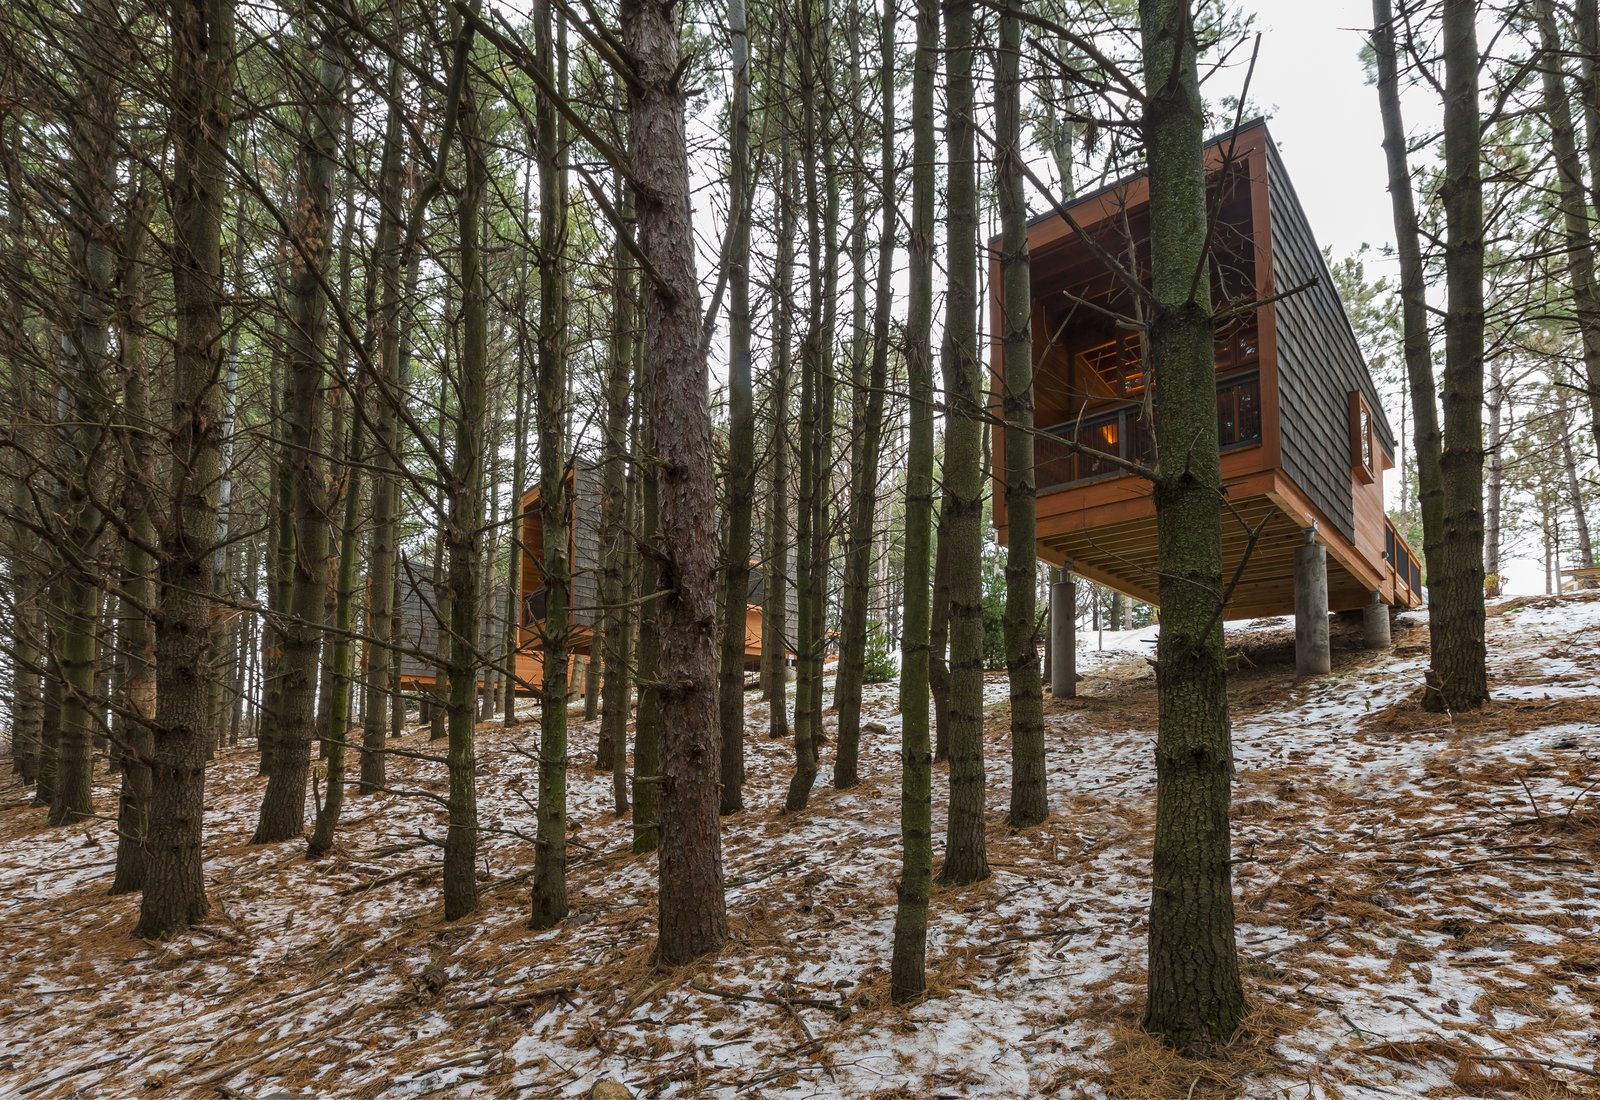 Outdoor, Woodland, Slope, and Trees The three cabins were built by high school students enrolled in a vocational training program.    Best Outdoor Slope Trees Photos from Camp in Style at This Trio of Cedar-Clad Cabins in Minnesota